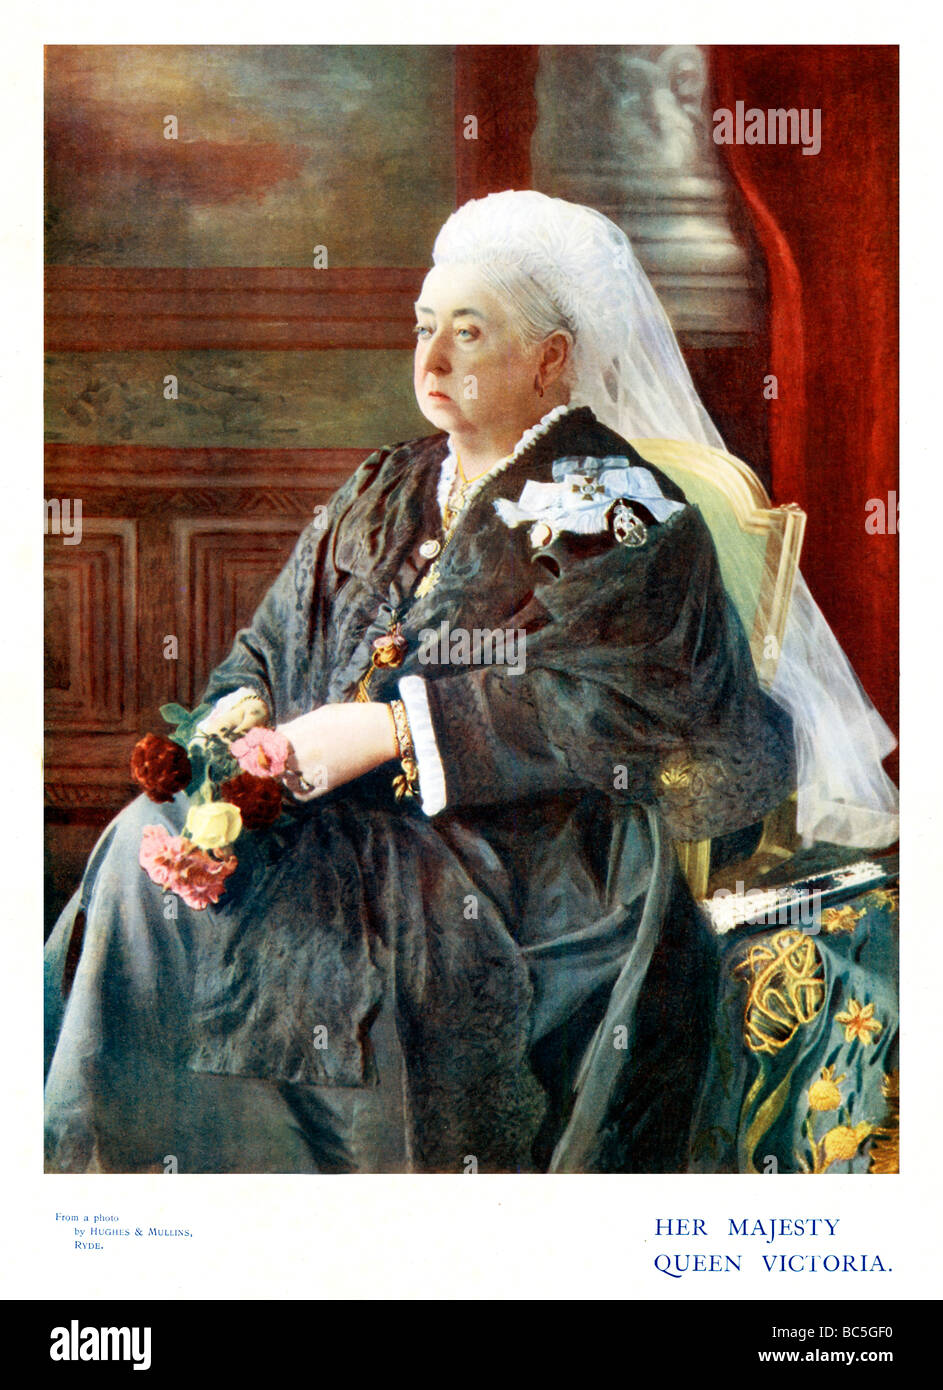 Queen Victoria 1900 colour portrait photo of the Empress towards the end of her long reign - Stock Image